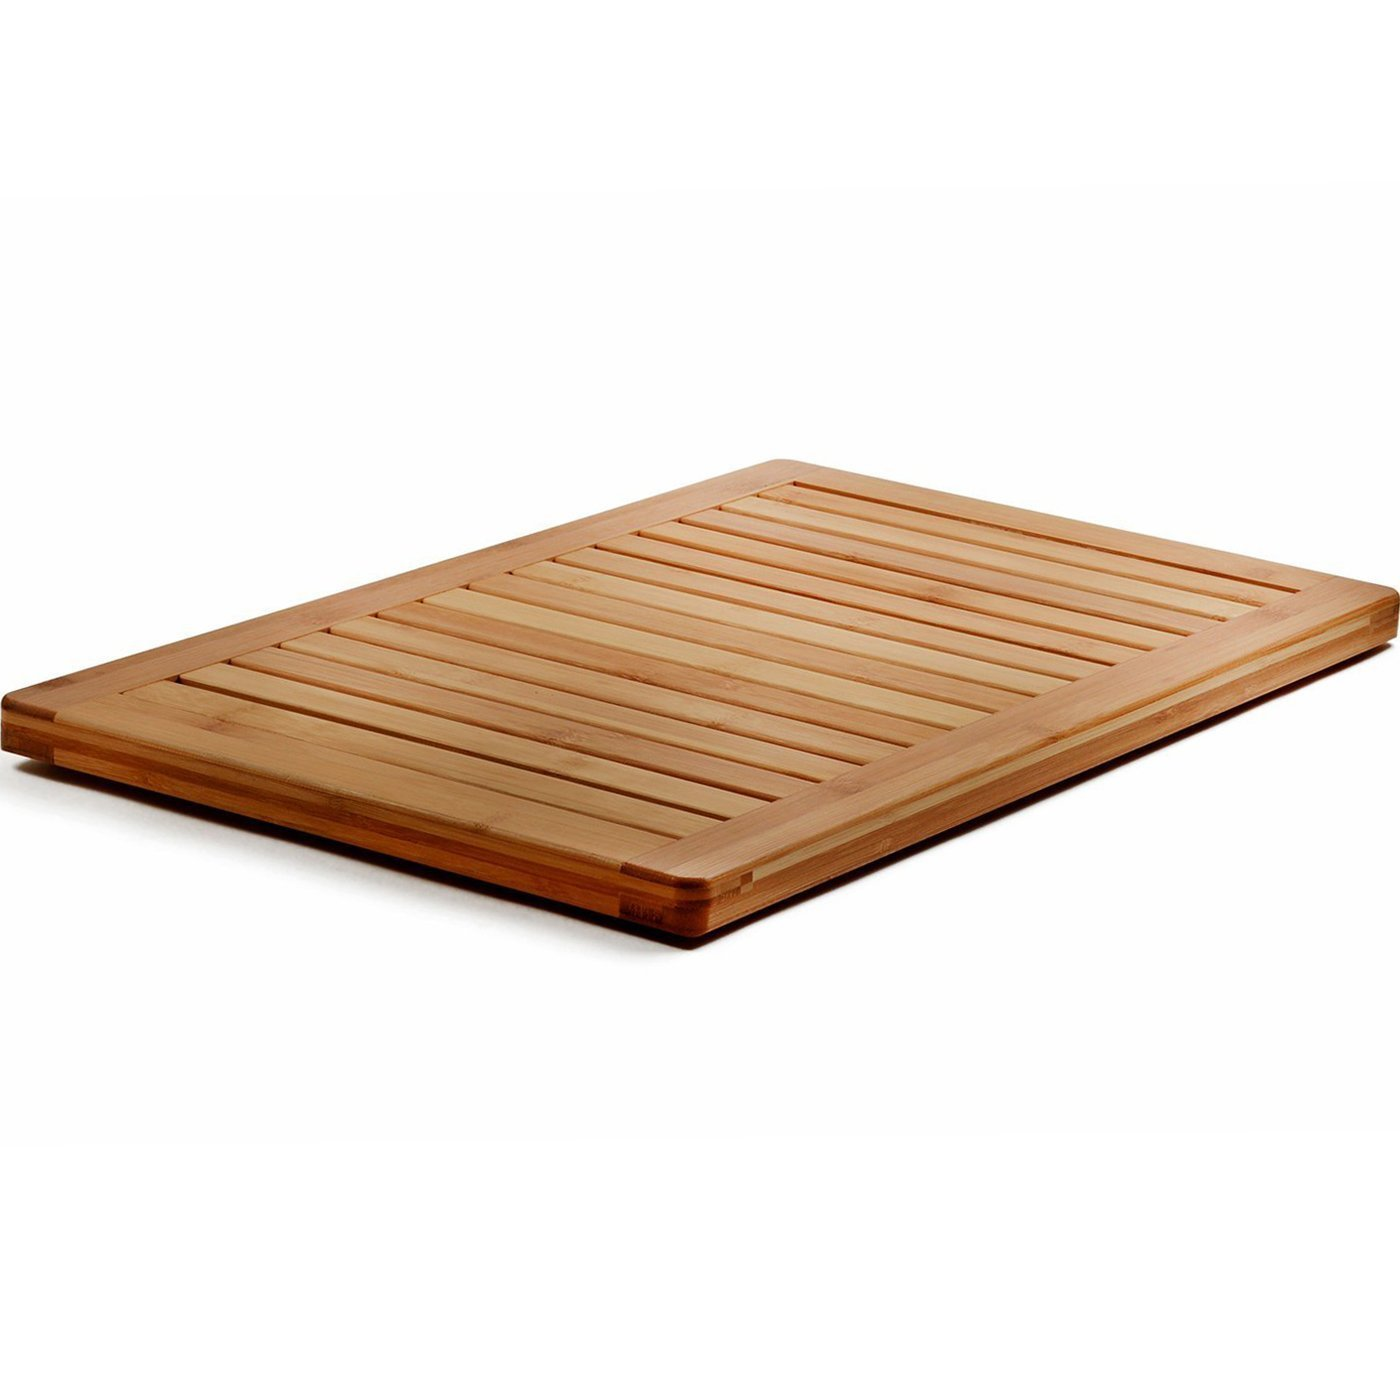 Bambusi Luxury Bamboo Bath Mat - Non-Slip Shower Floor Mat for Spa and Bathroom or Indoor and Outdoor Use - 18 x 24 Inches by Bambüsi